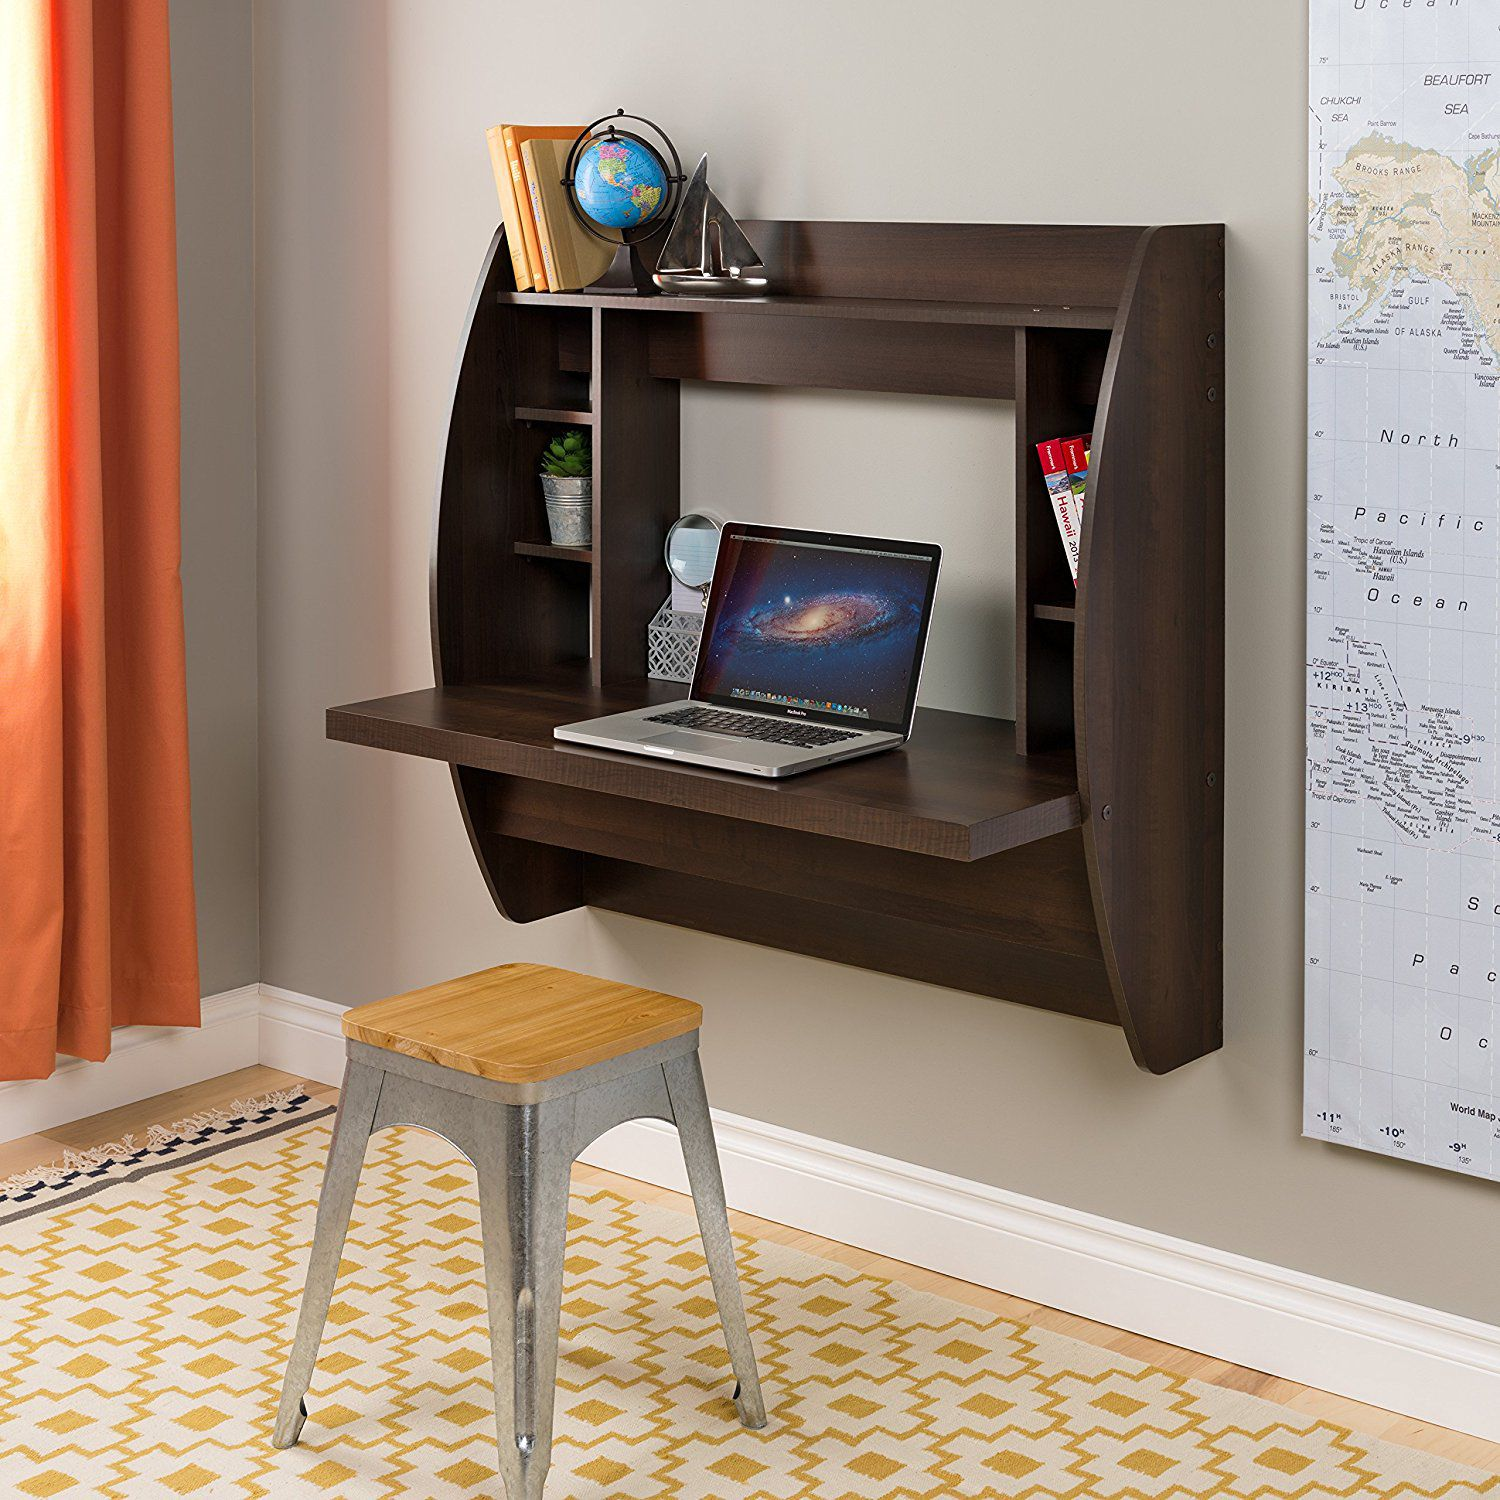 Prime The 9 Best Computer Desks Of 2019 Unemploymentrelief Wooden Chair Designs For Living Room Unemploymentrelieforg